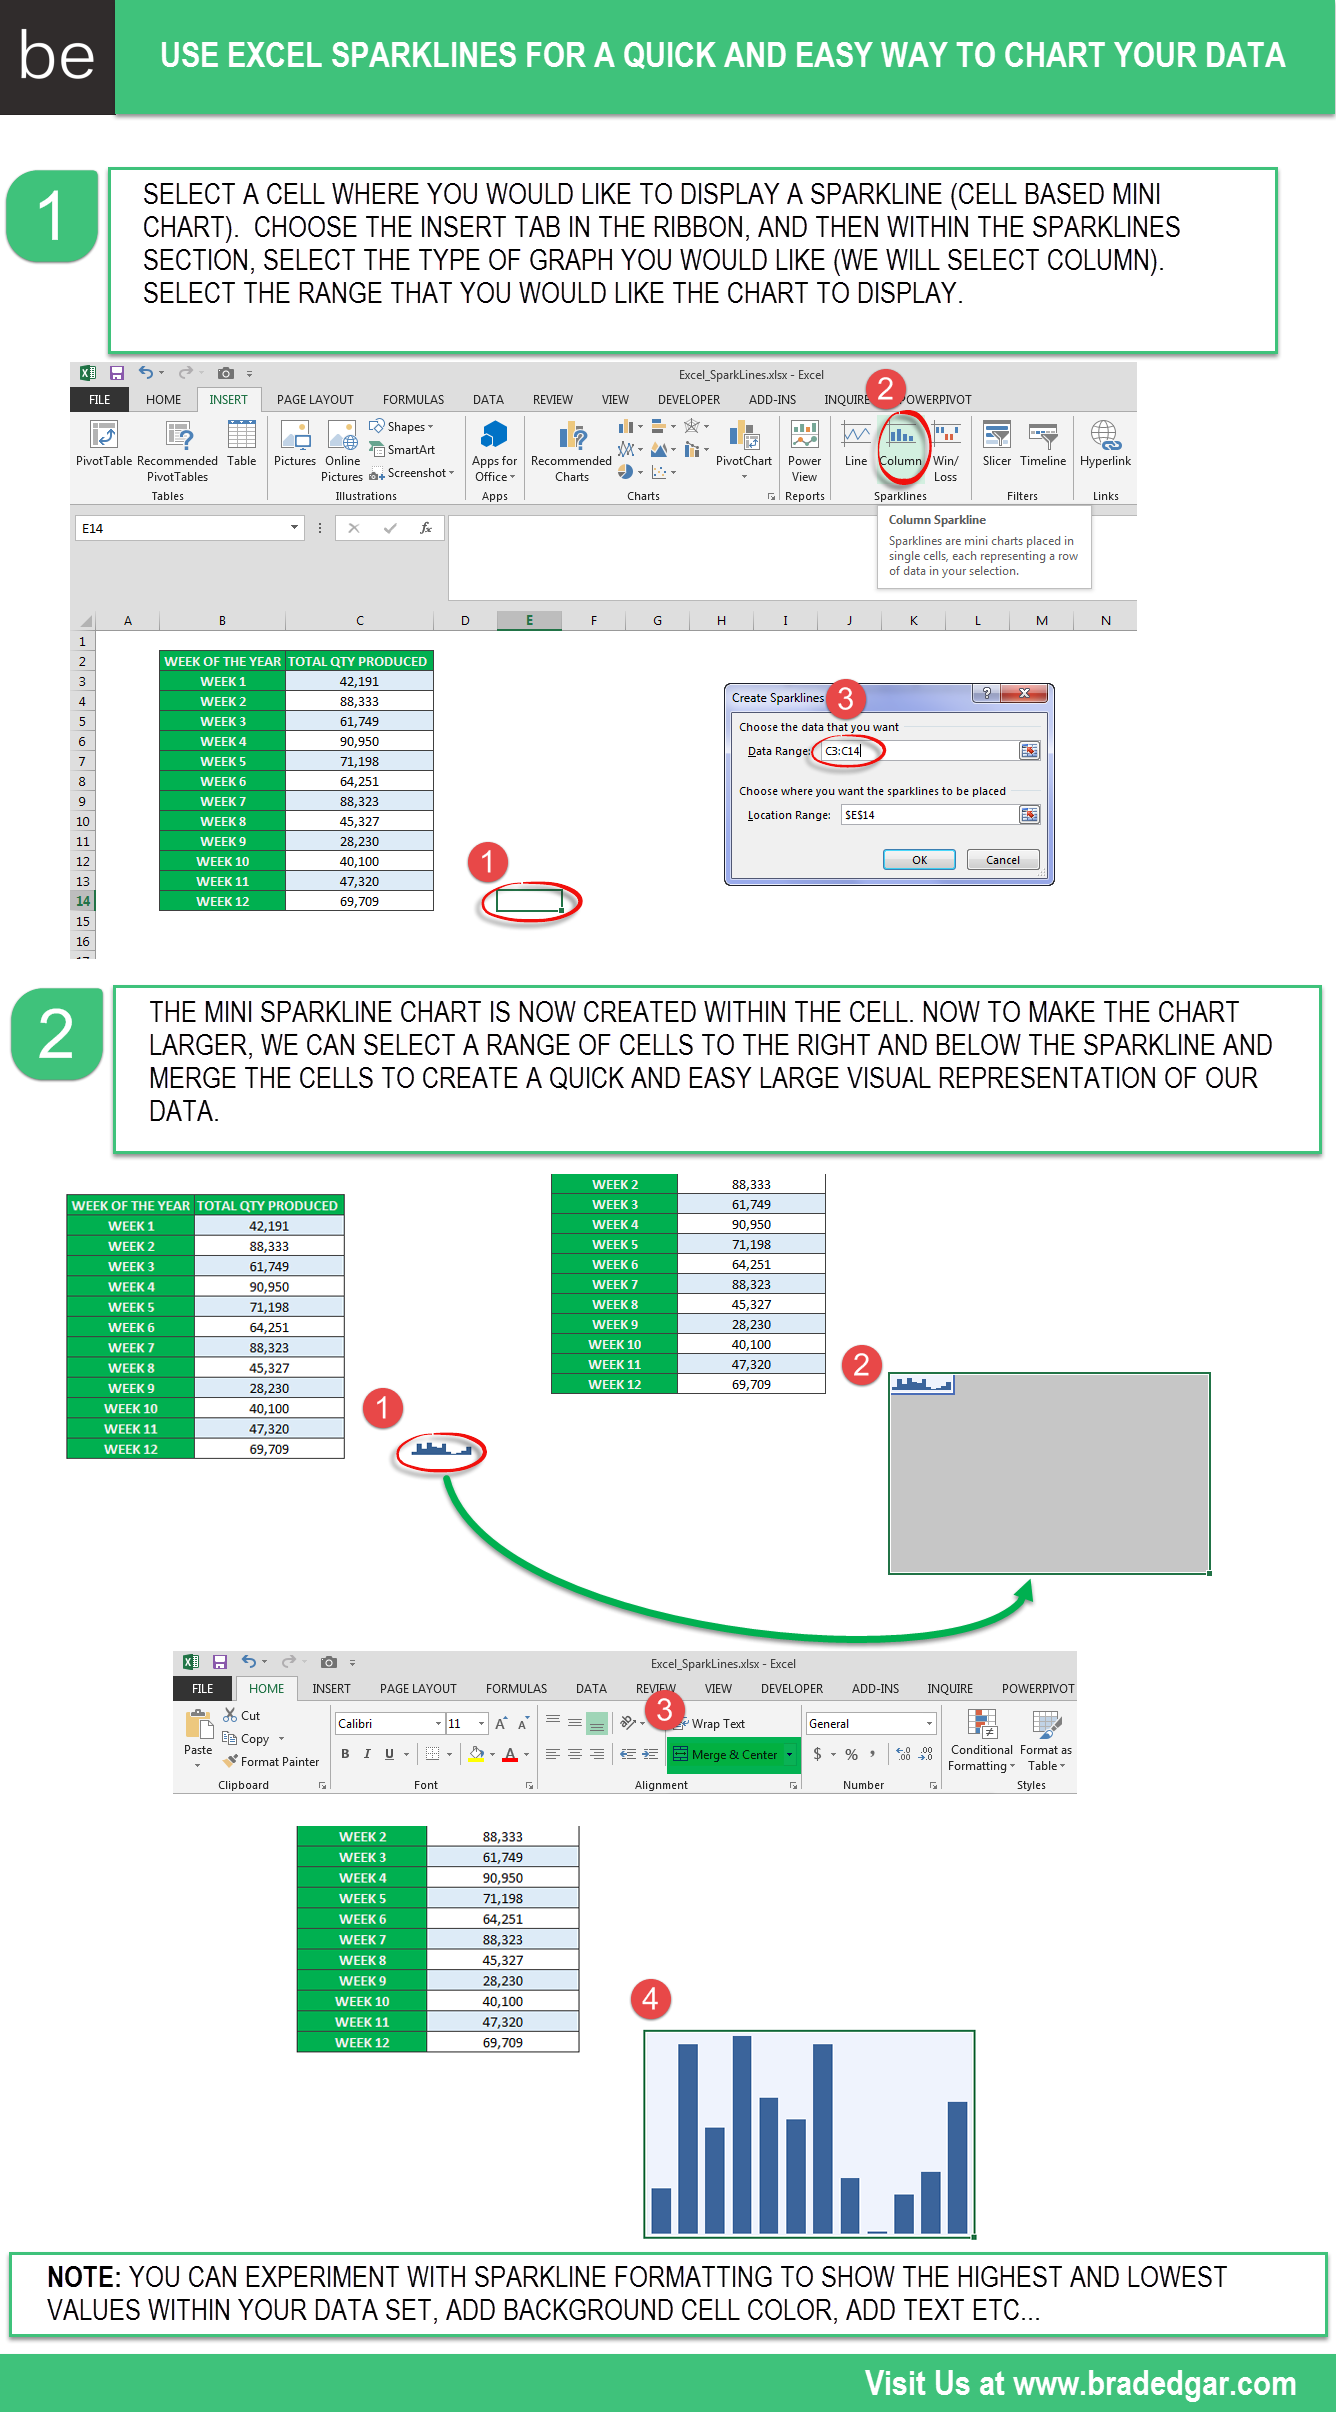 Excel Sparklines Merge Sparkline Cells For Quick And Easy Charts Brad Edgar Excel Excel Spreadsheets Microsoft Excel